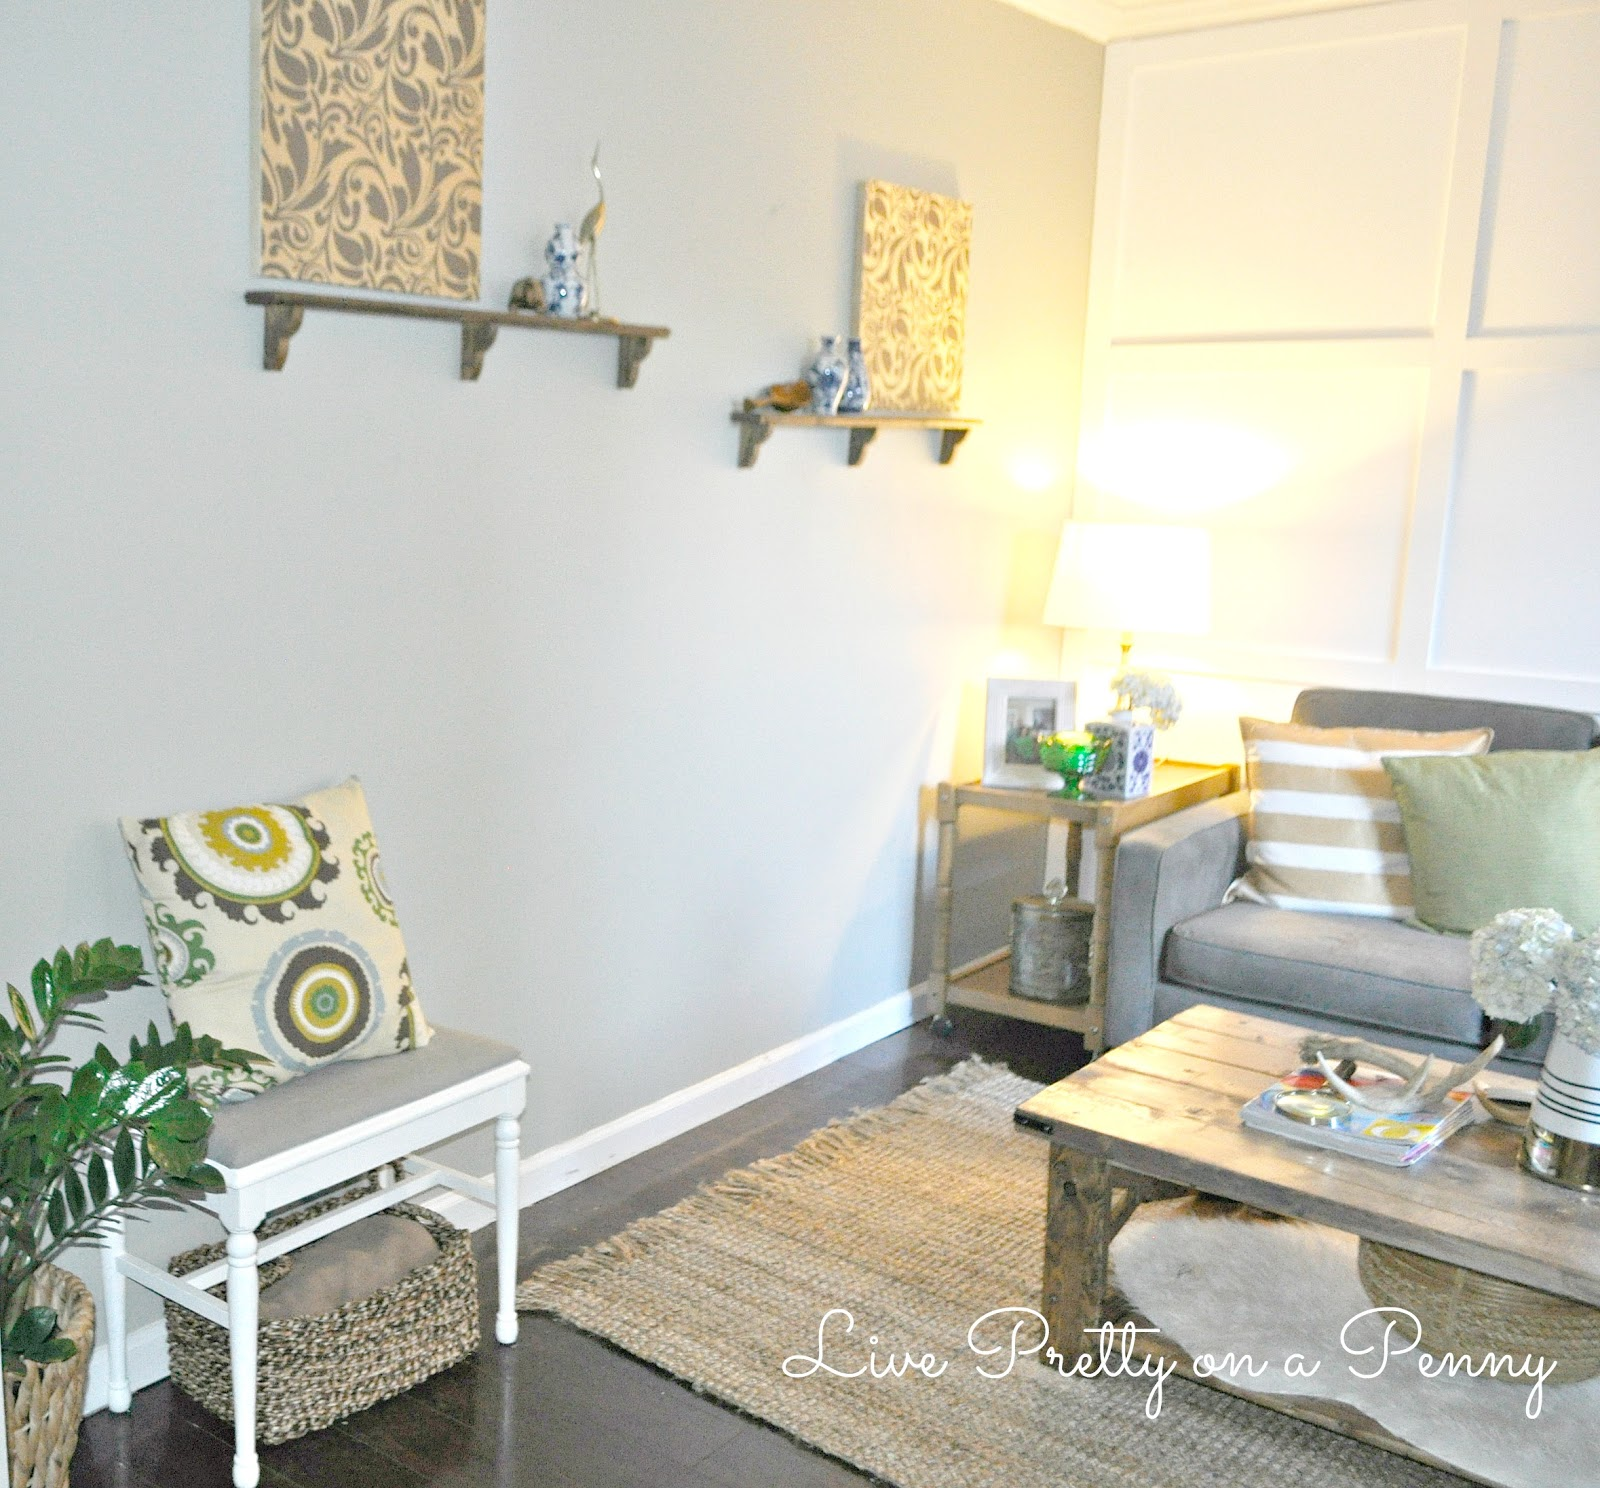 My Living Room Reveal: Before and After | Live Pretty on a Penny